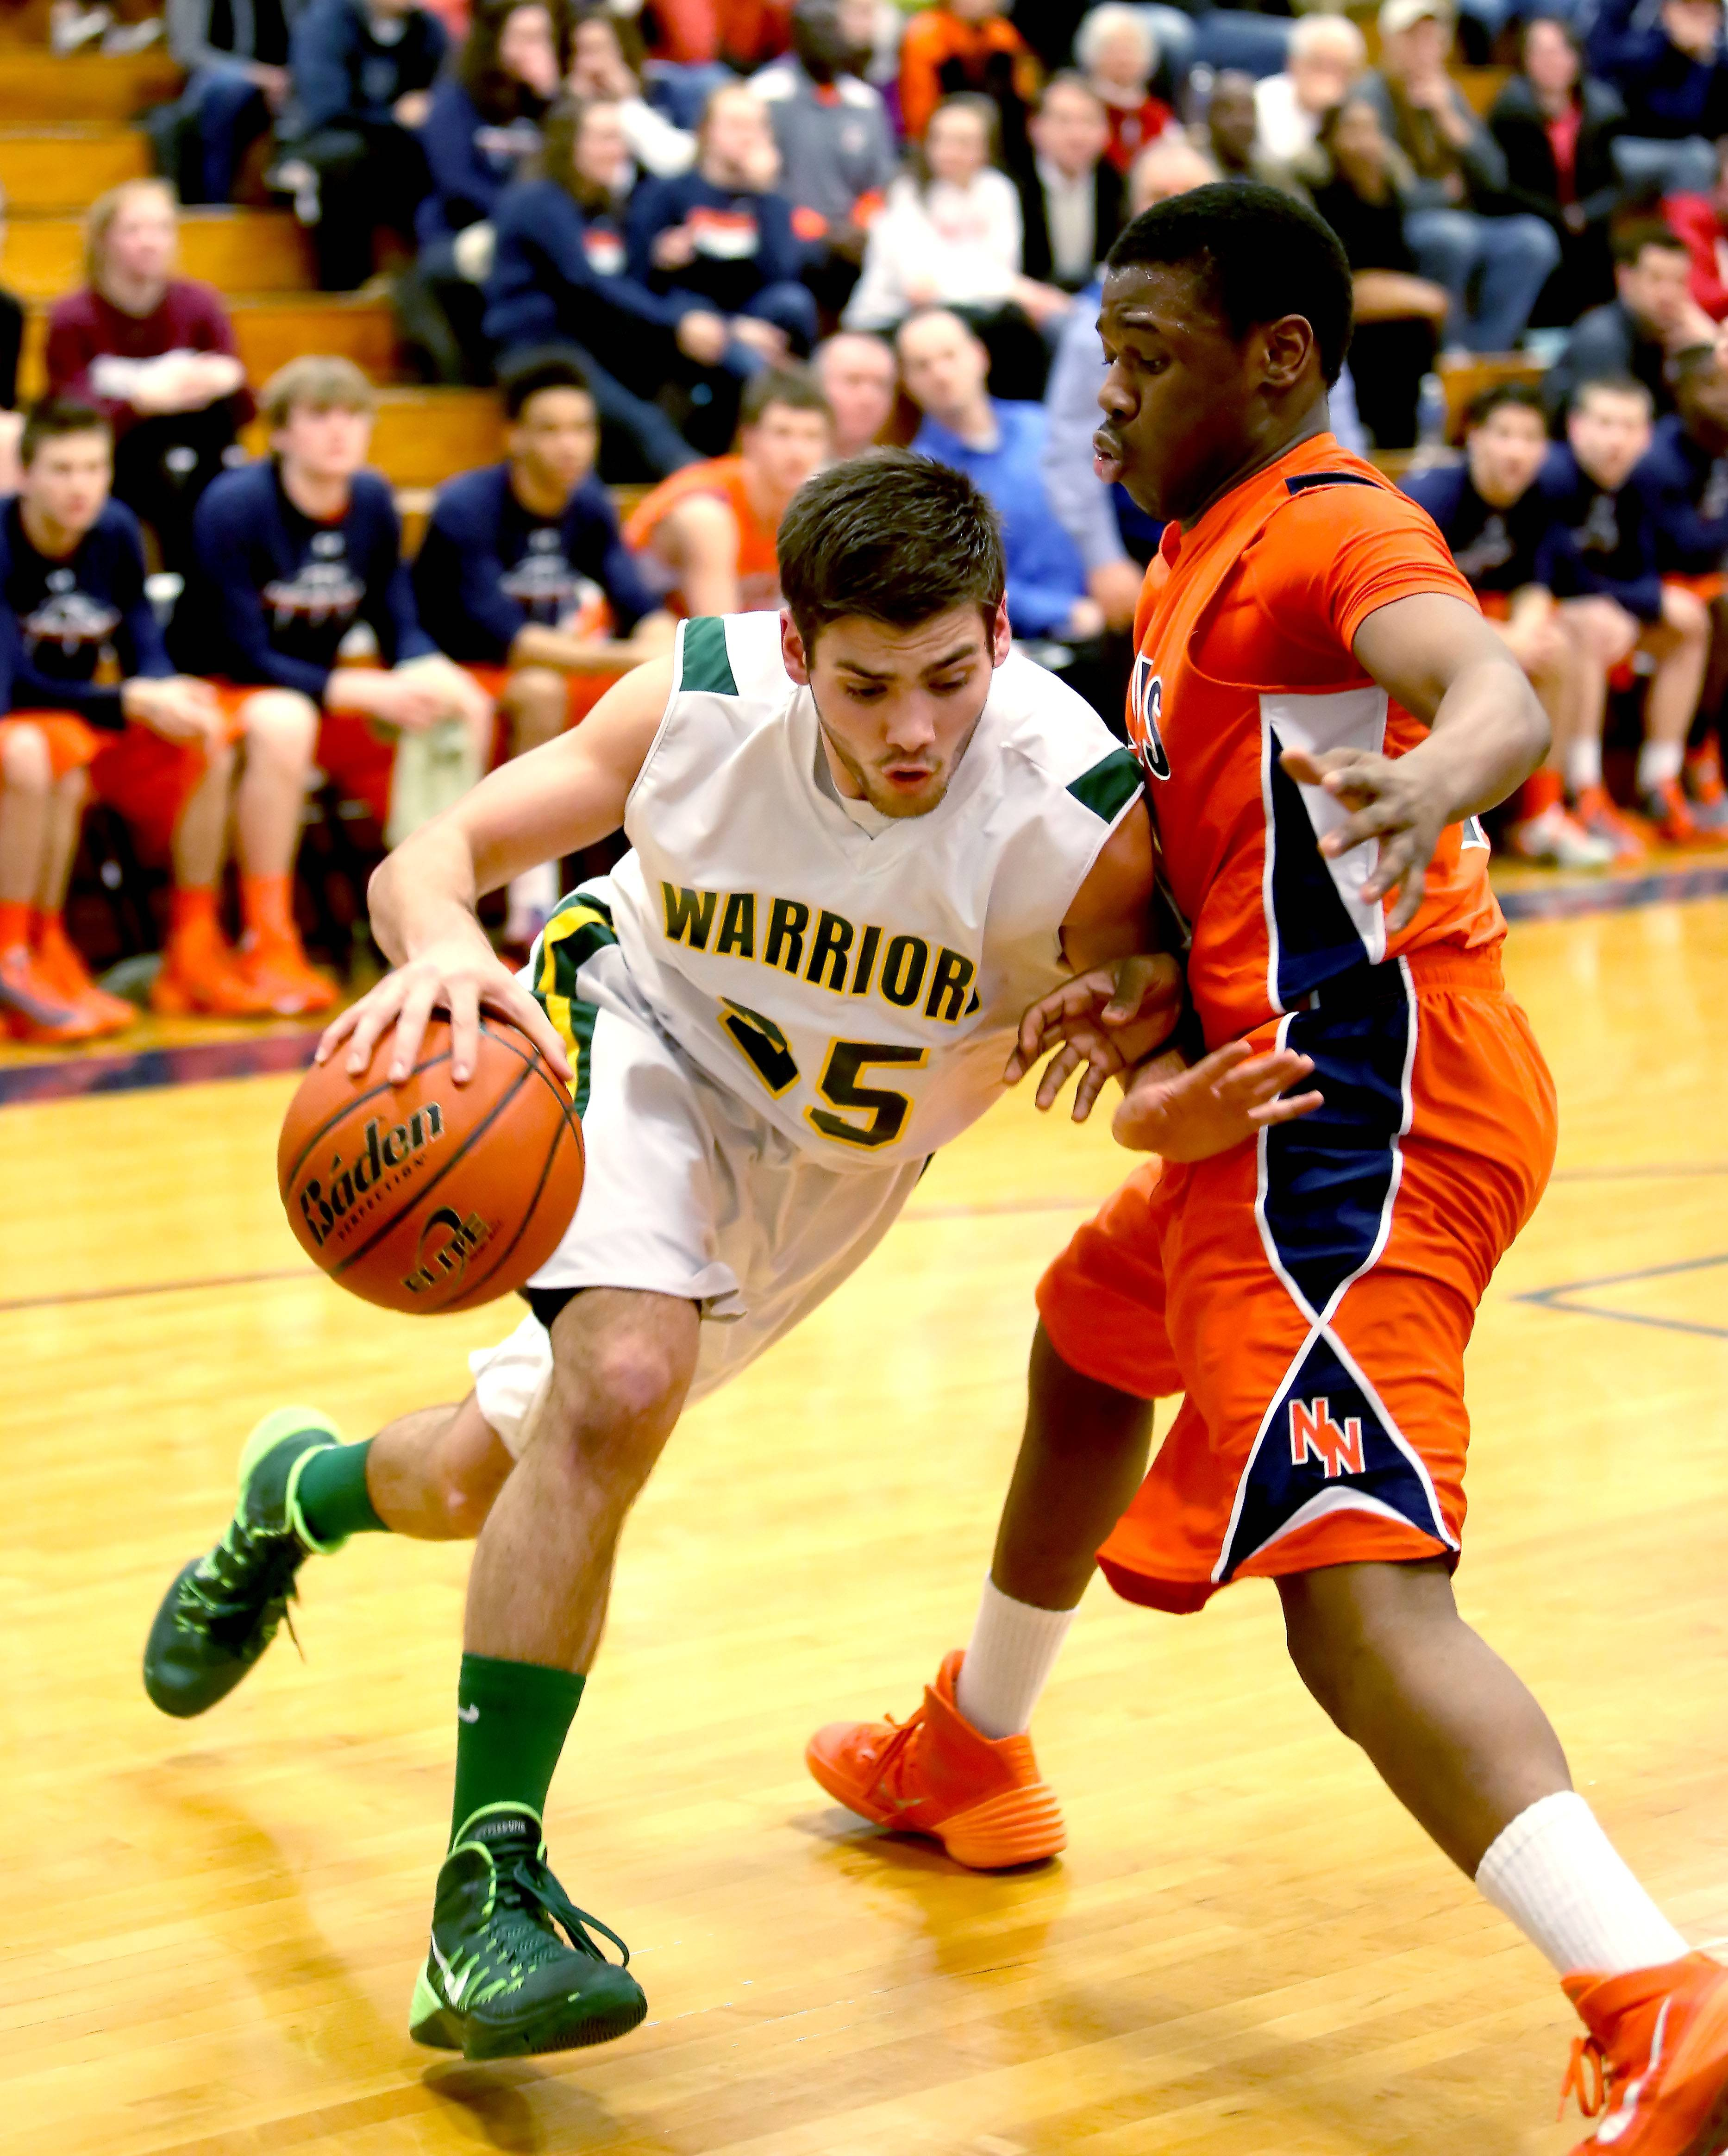 Waubonsie Valley's Matt Gialamas, left, drives past Jelani McClain Jr., right of Naperville North during Class 4A regional boys basketball in Lemont on Tuesday.